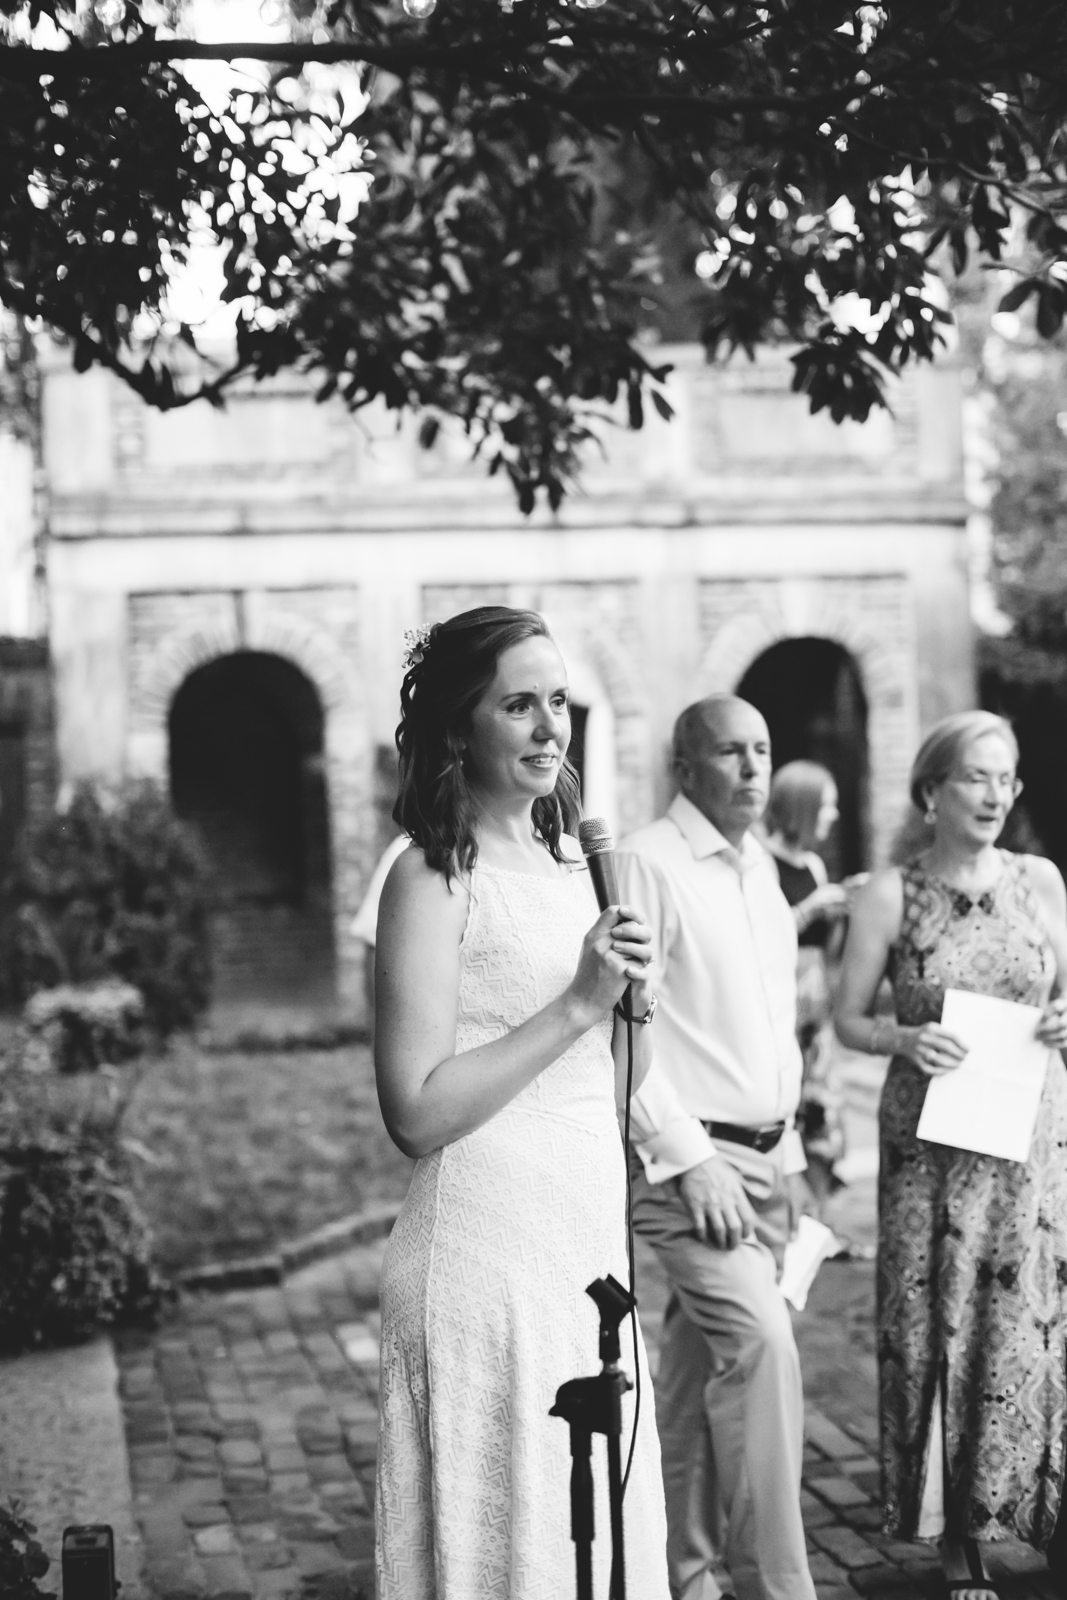 richmondvaweddingphotography-poemuseum-201.jpg